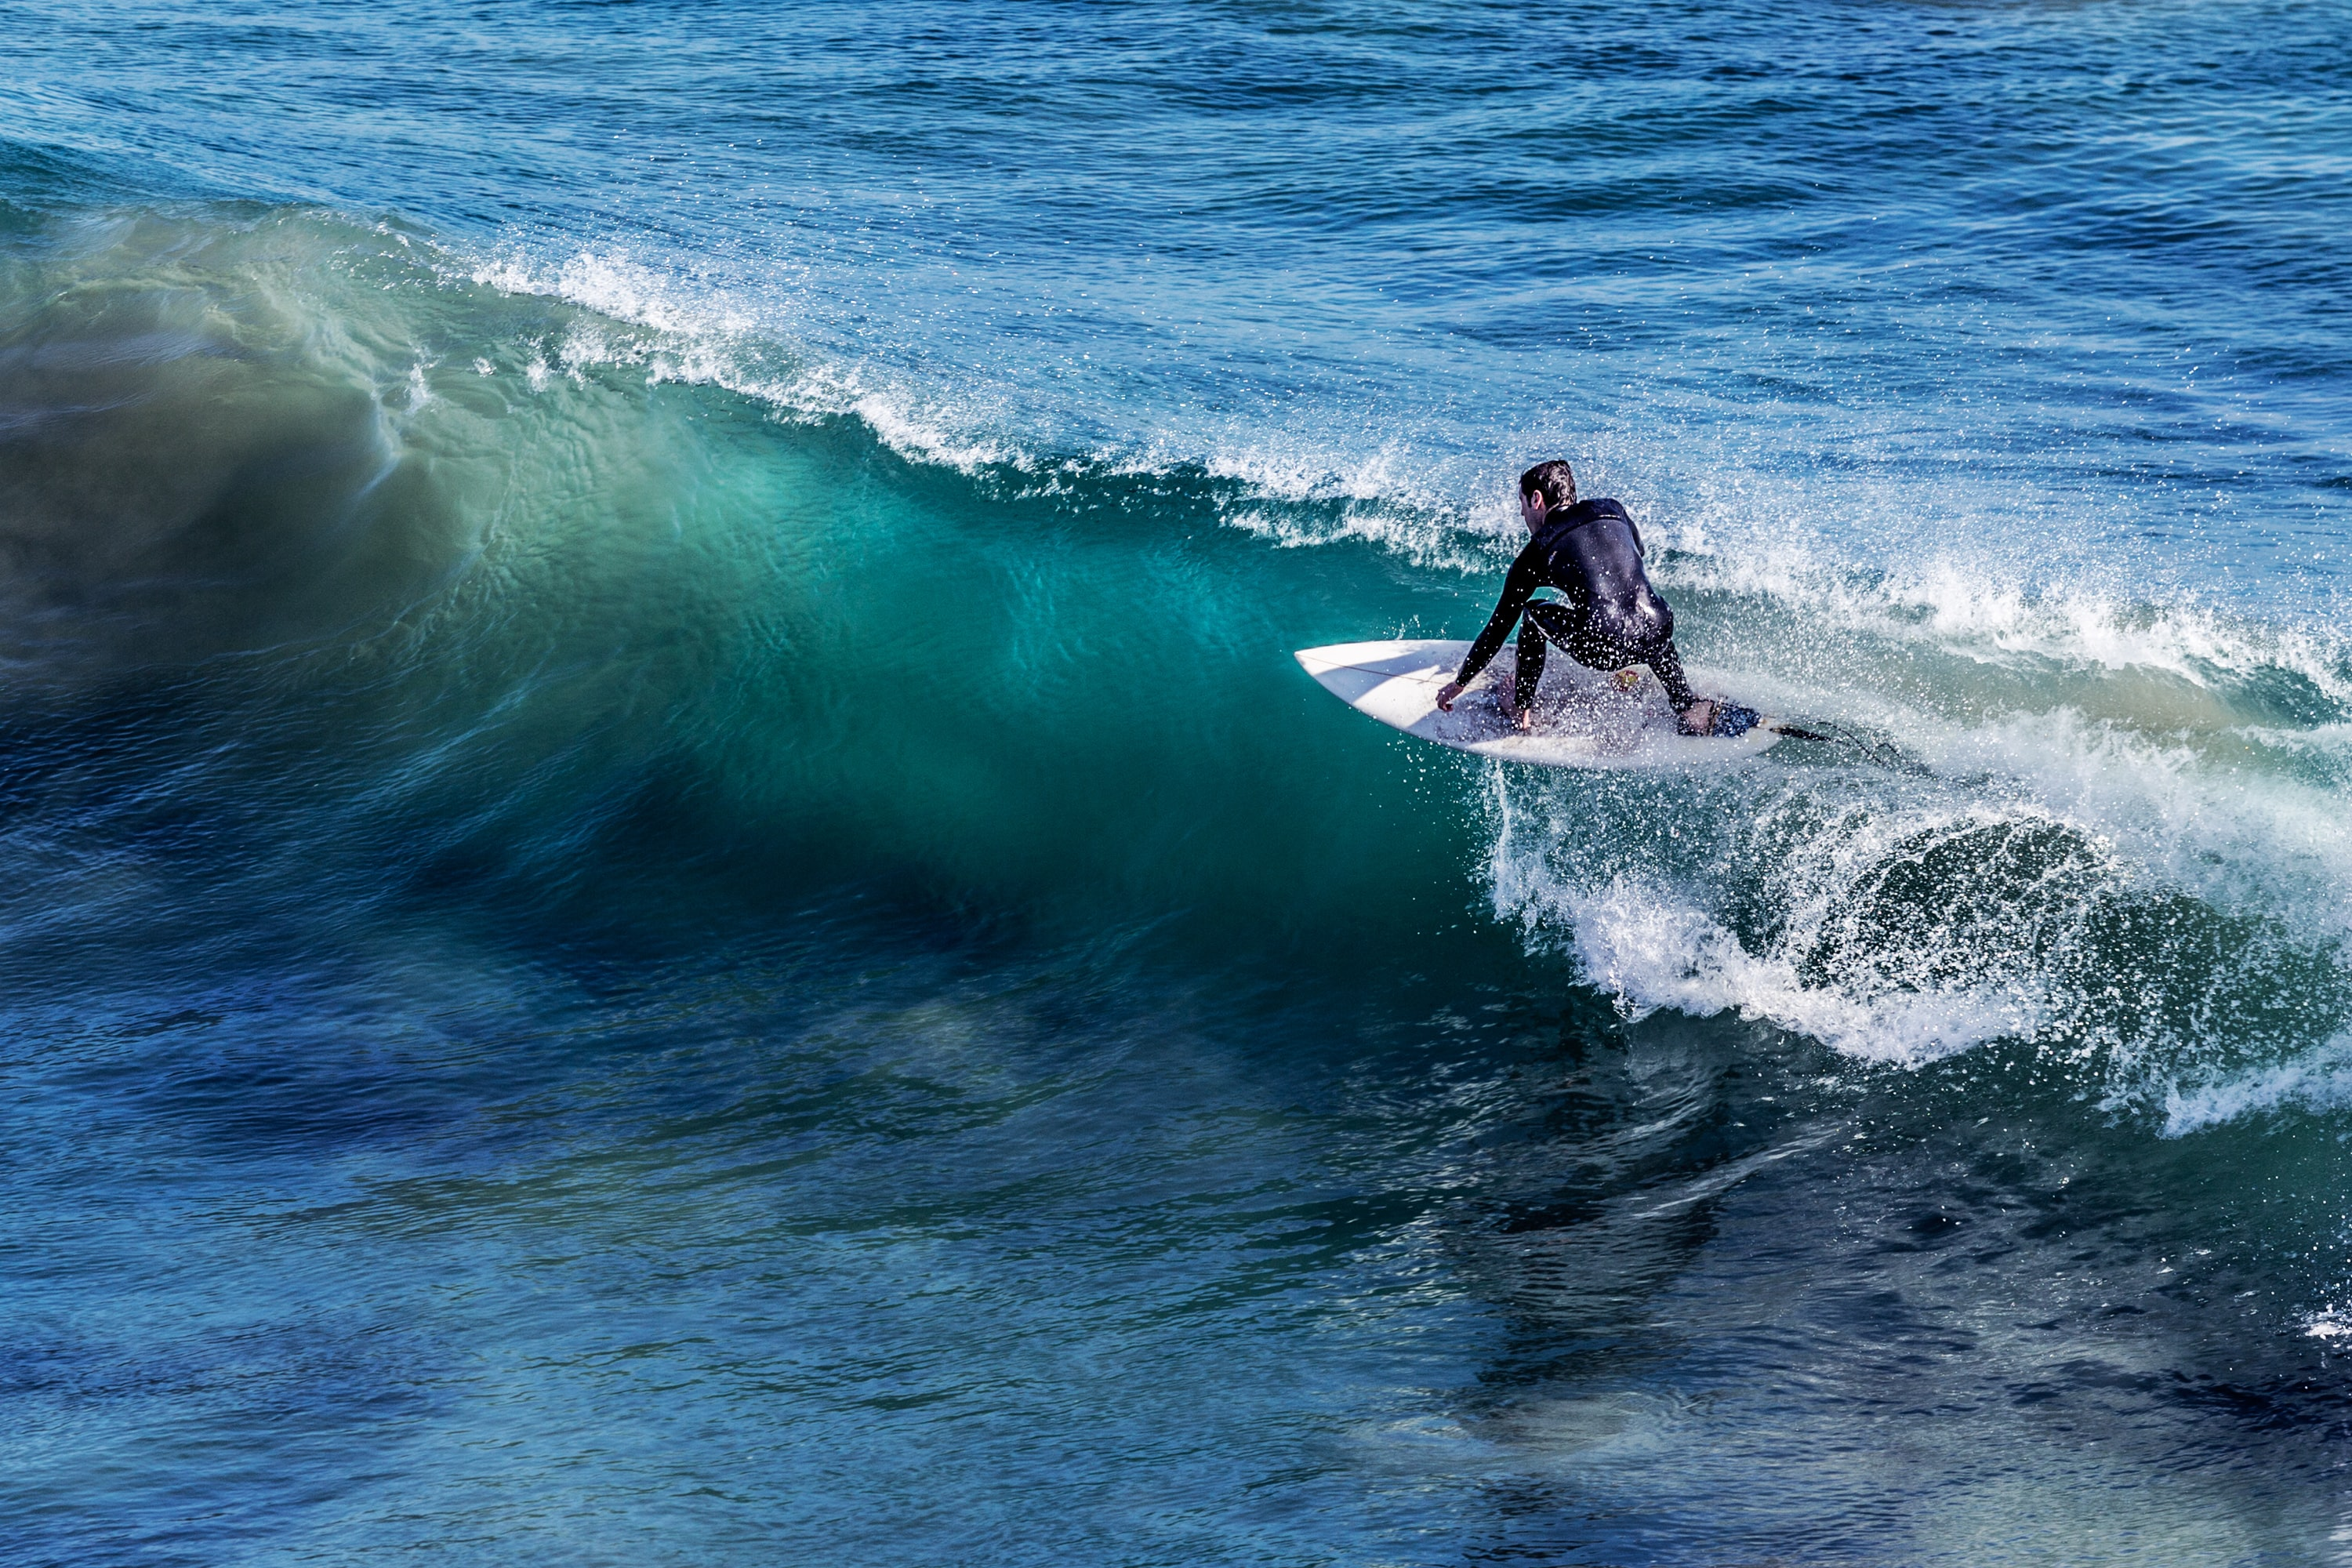 Surfer in swimsuit surfing the wave at Point Dume State Beach